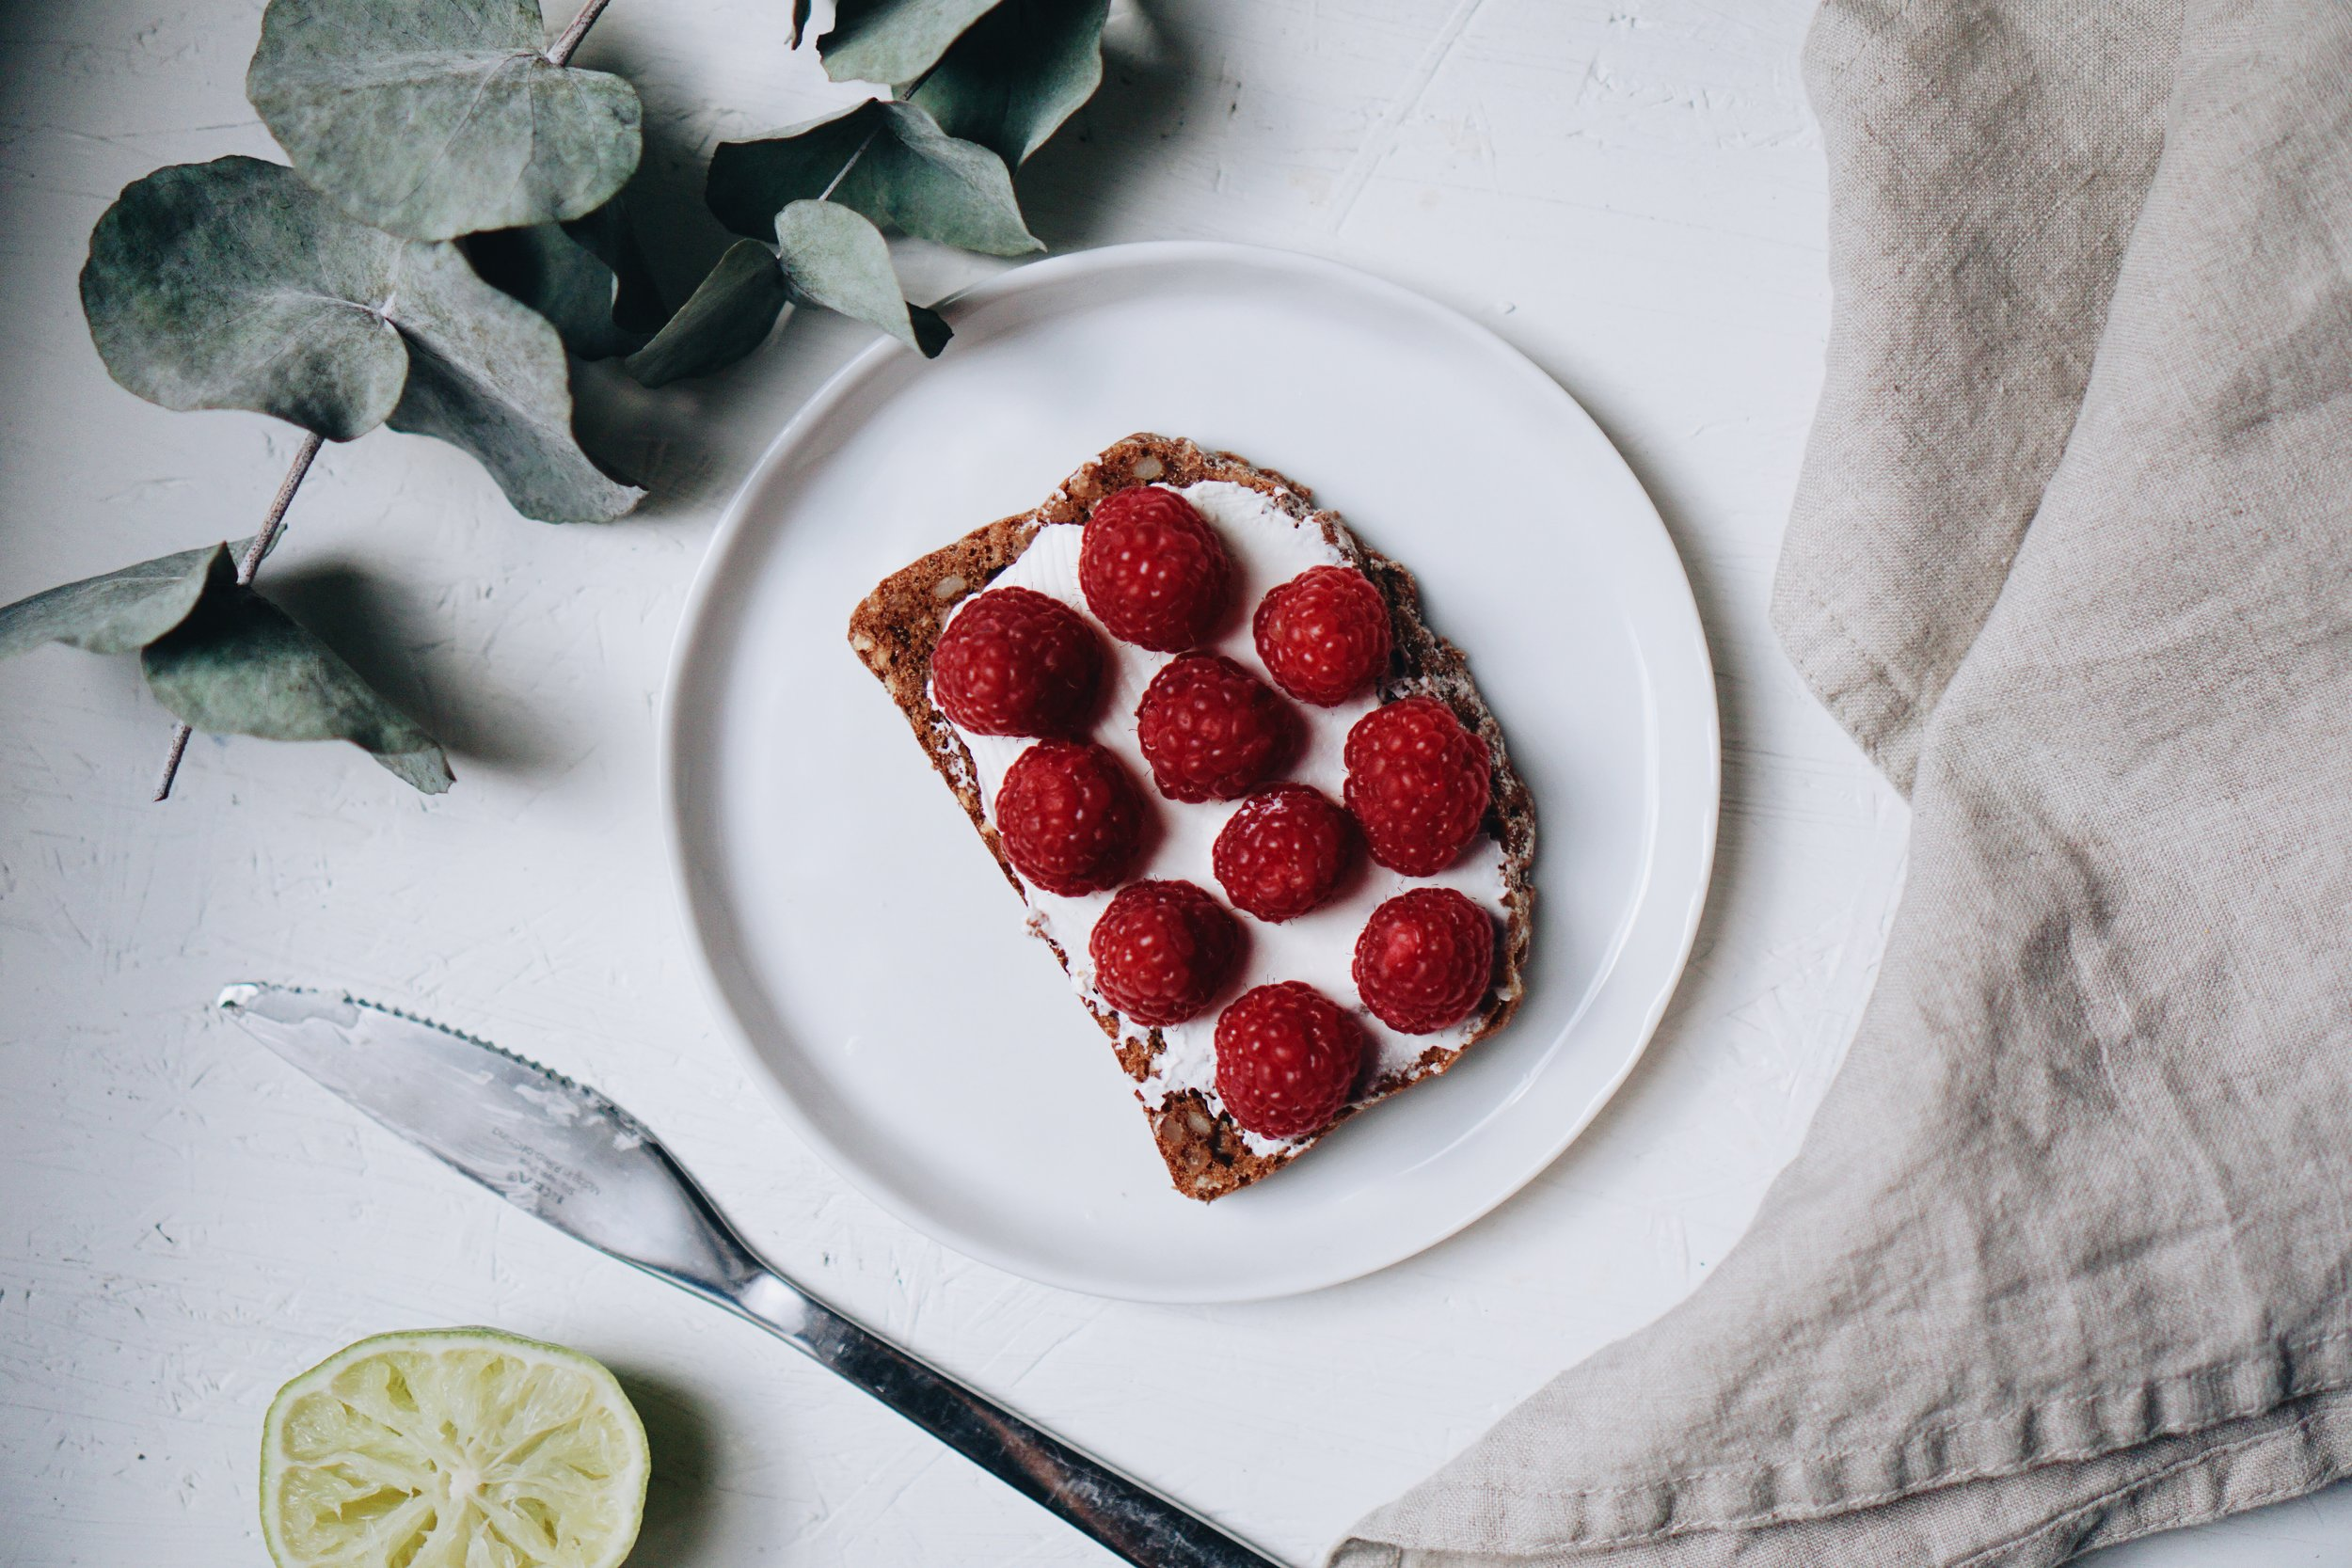 Rye bread with cream cheese and raspberries.